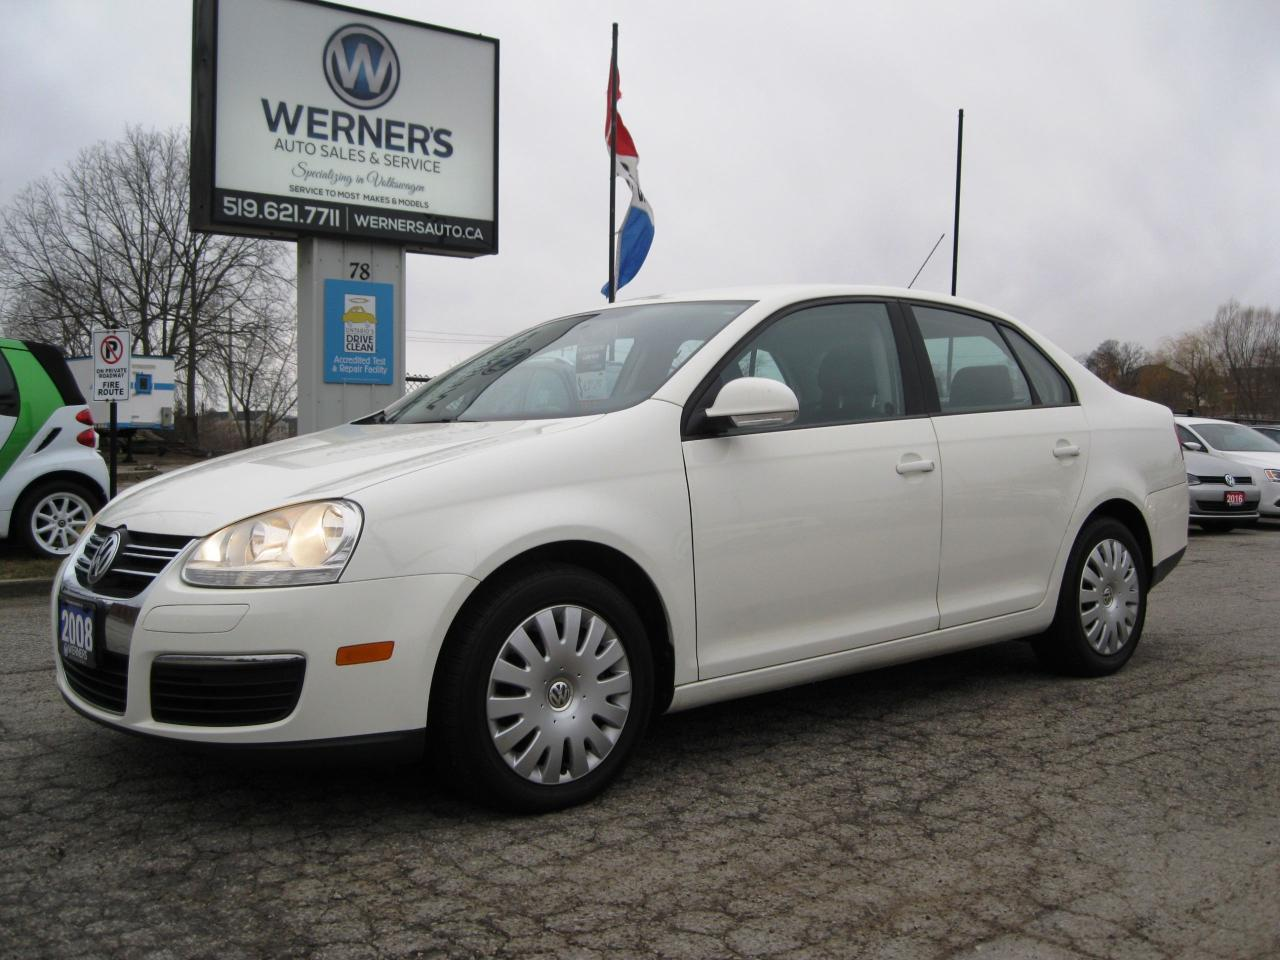 cam image sale sedan for sdn volkswagen full heated seats used large inventory jetta backup